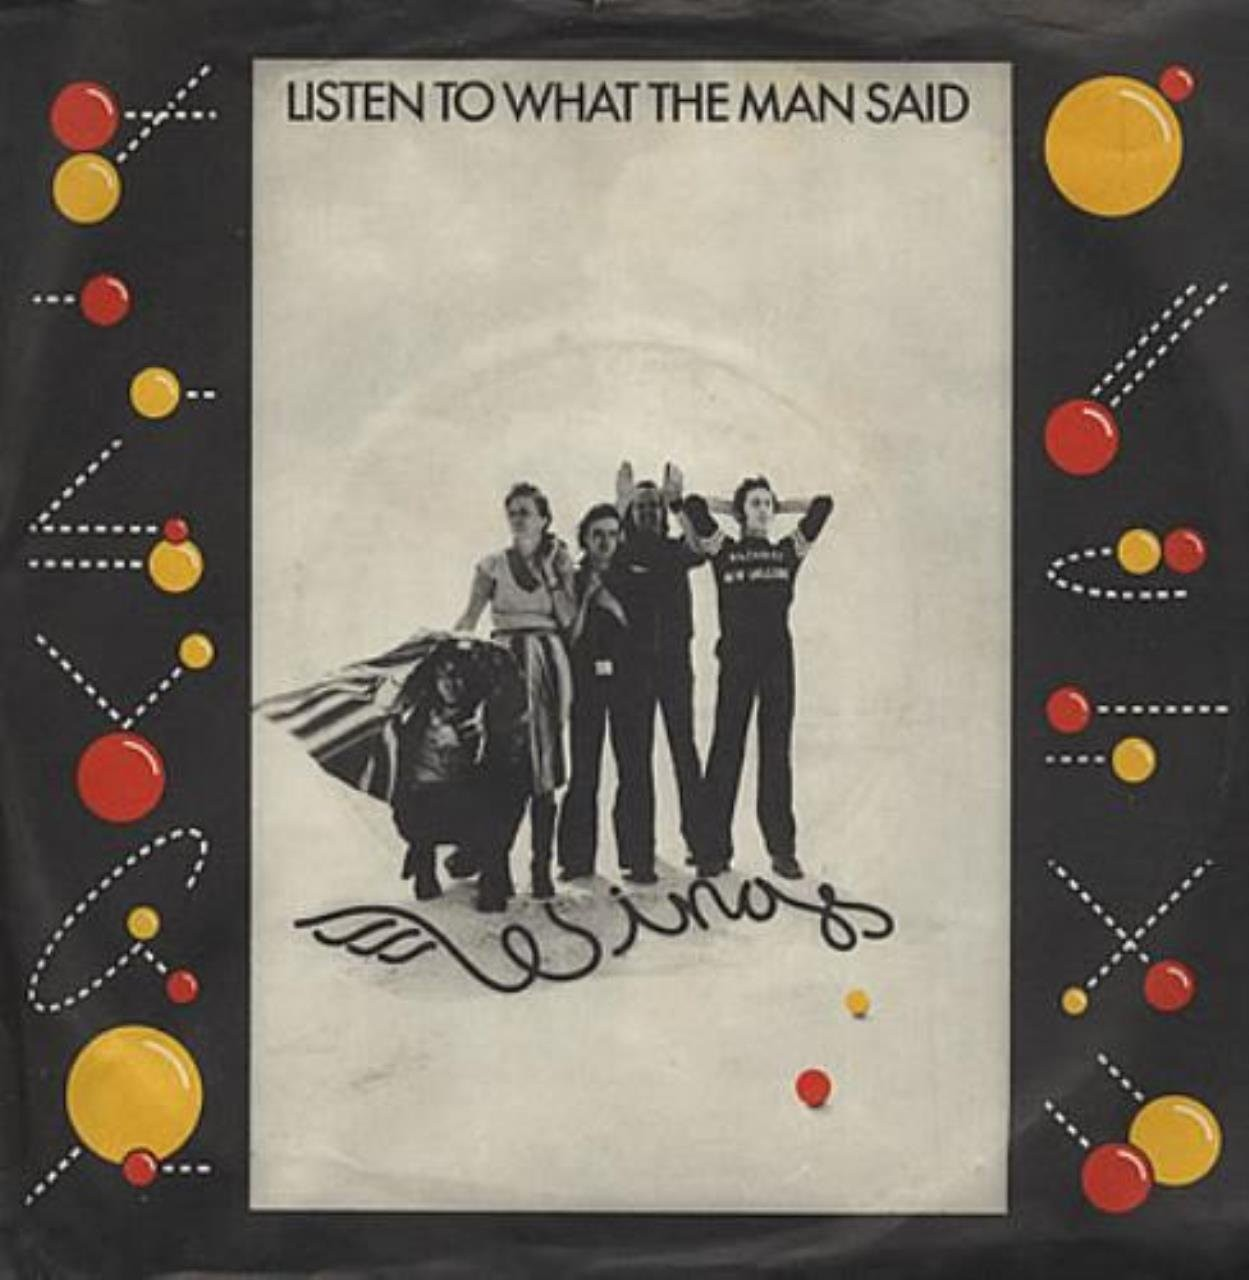 Paul-McCartney-And-Wings-Listen-To-What-The-Man-Said